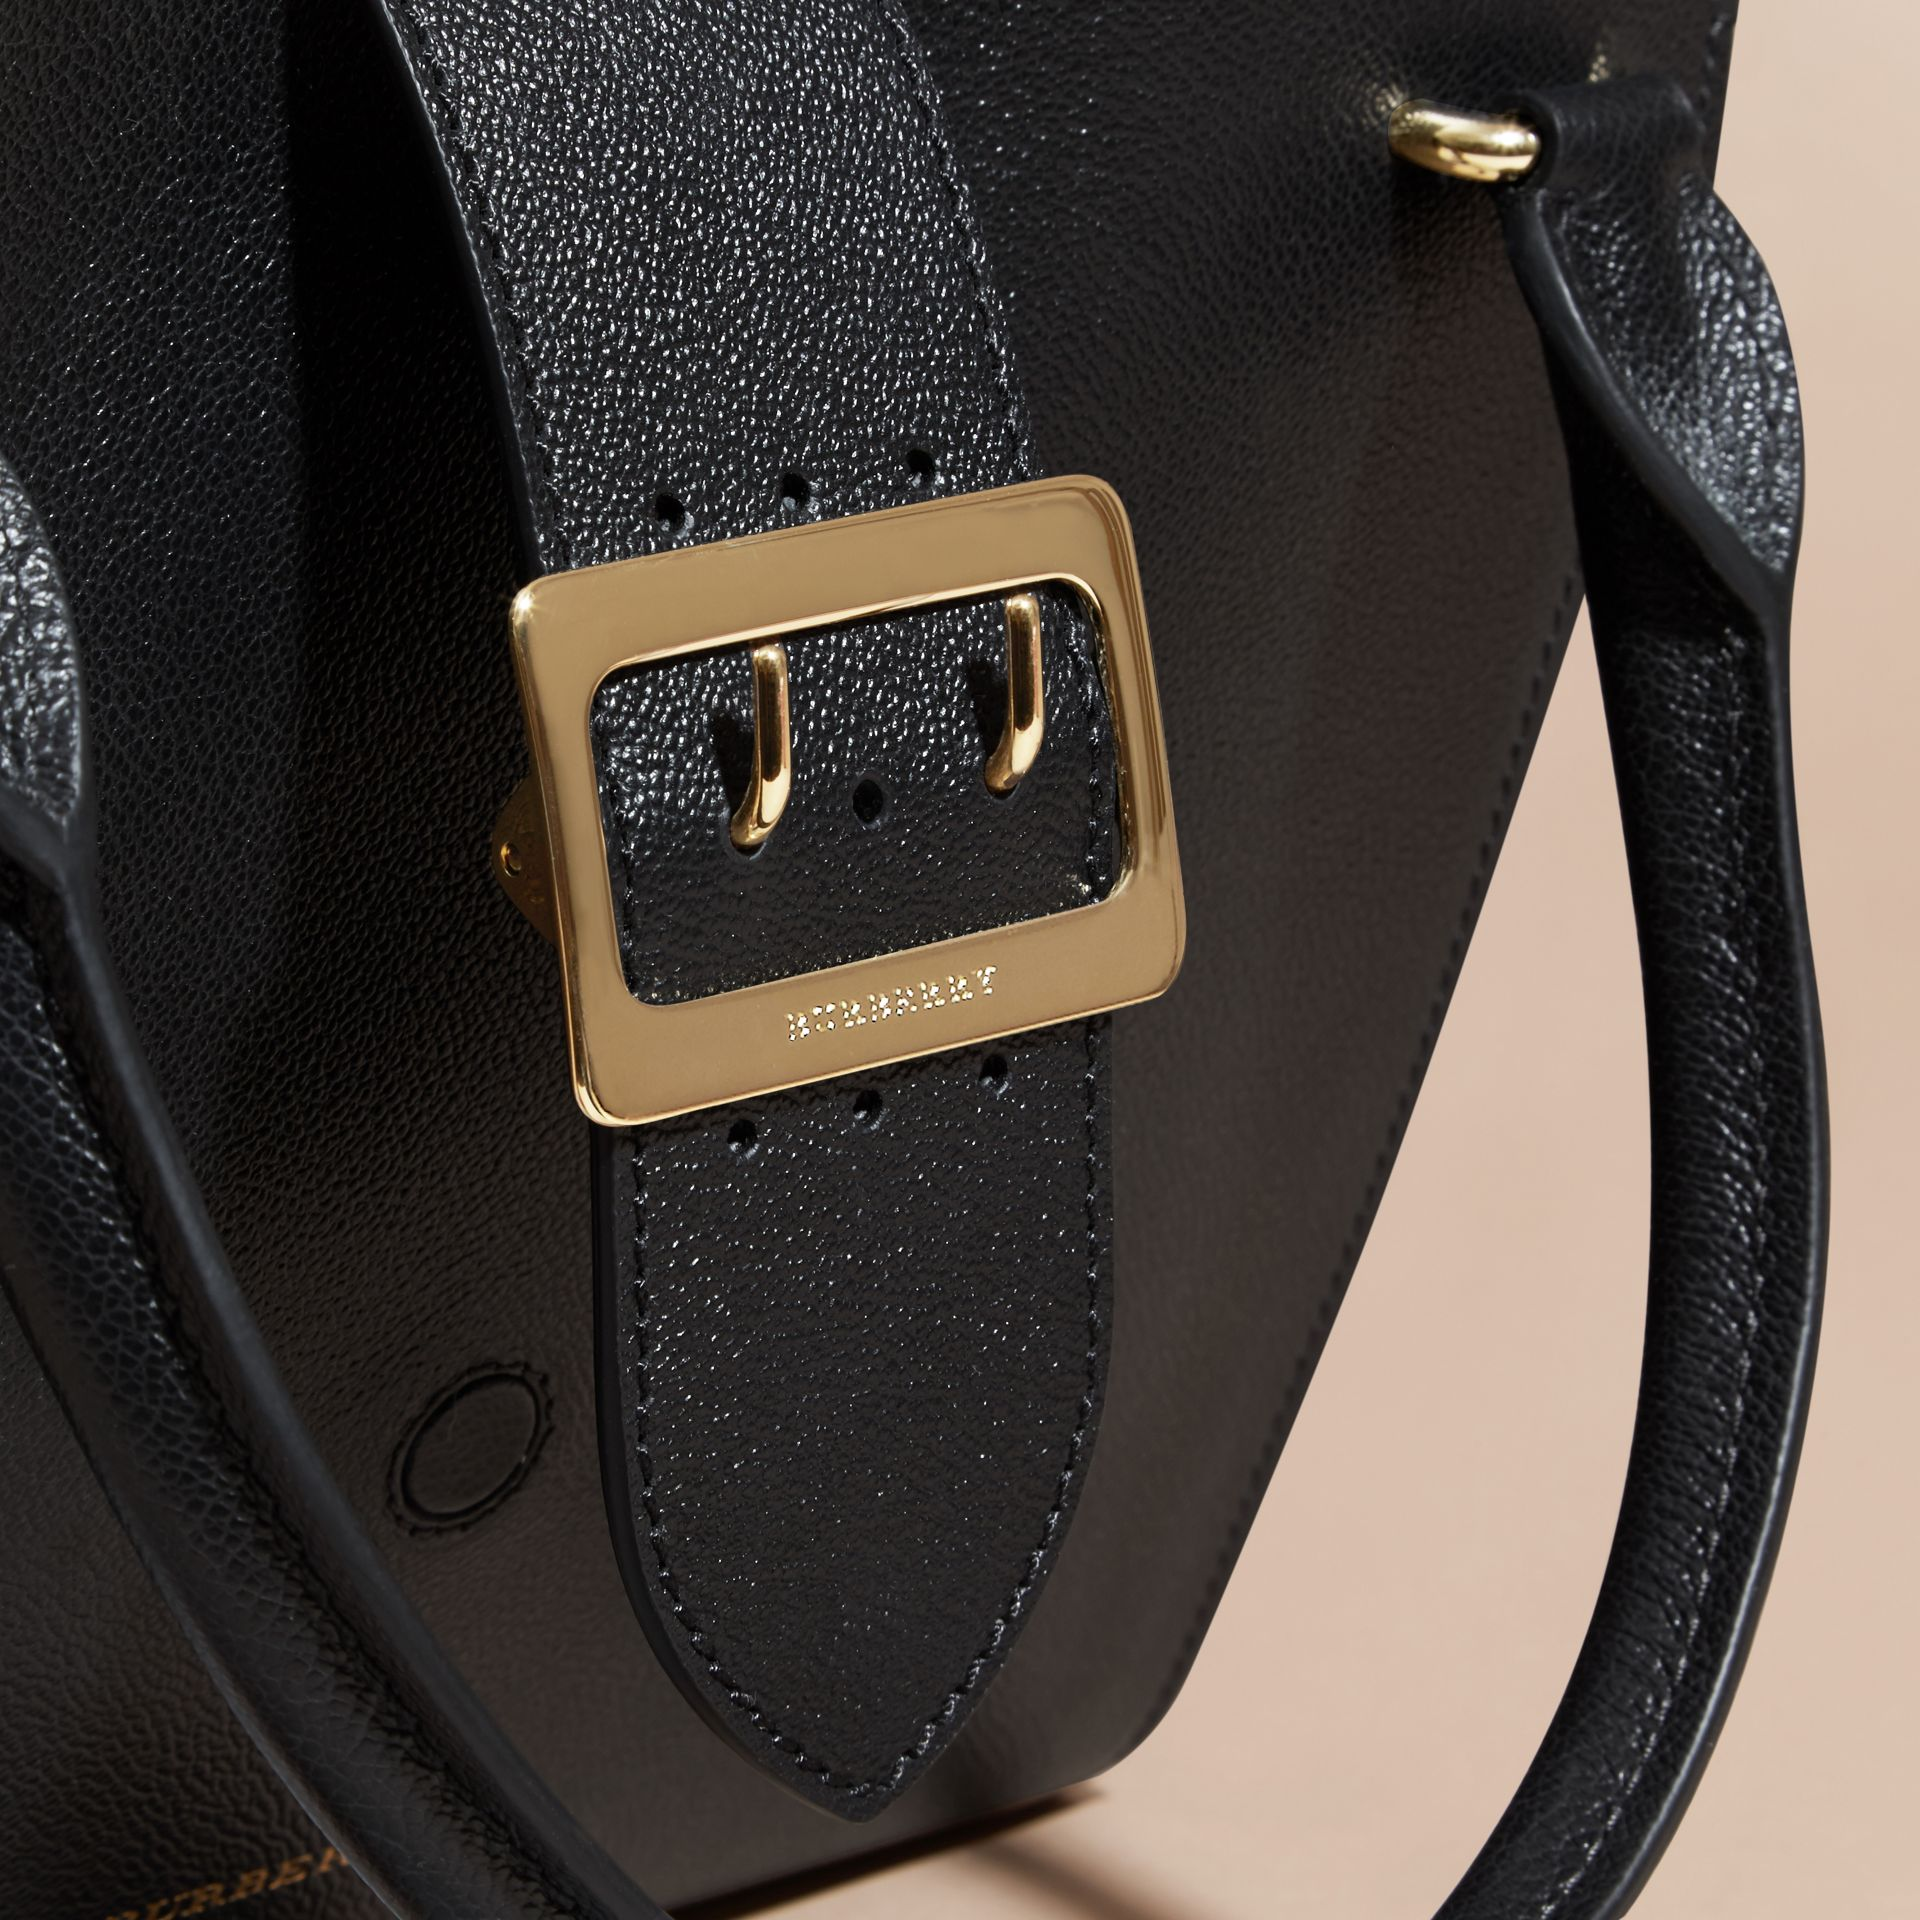 Noir Sac tote The Buckle medium en cuir grené Noir - photo de la galerie 2